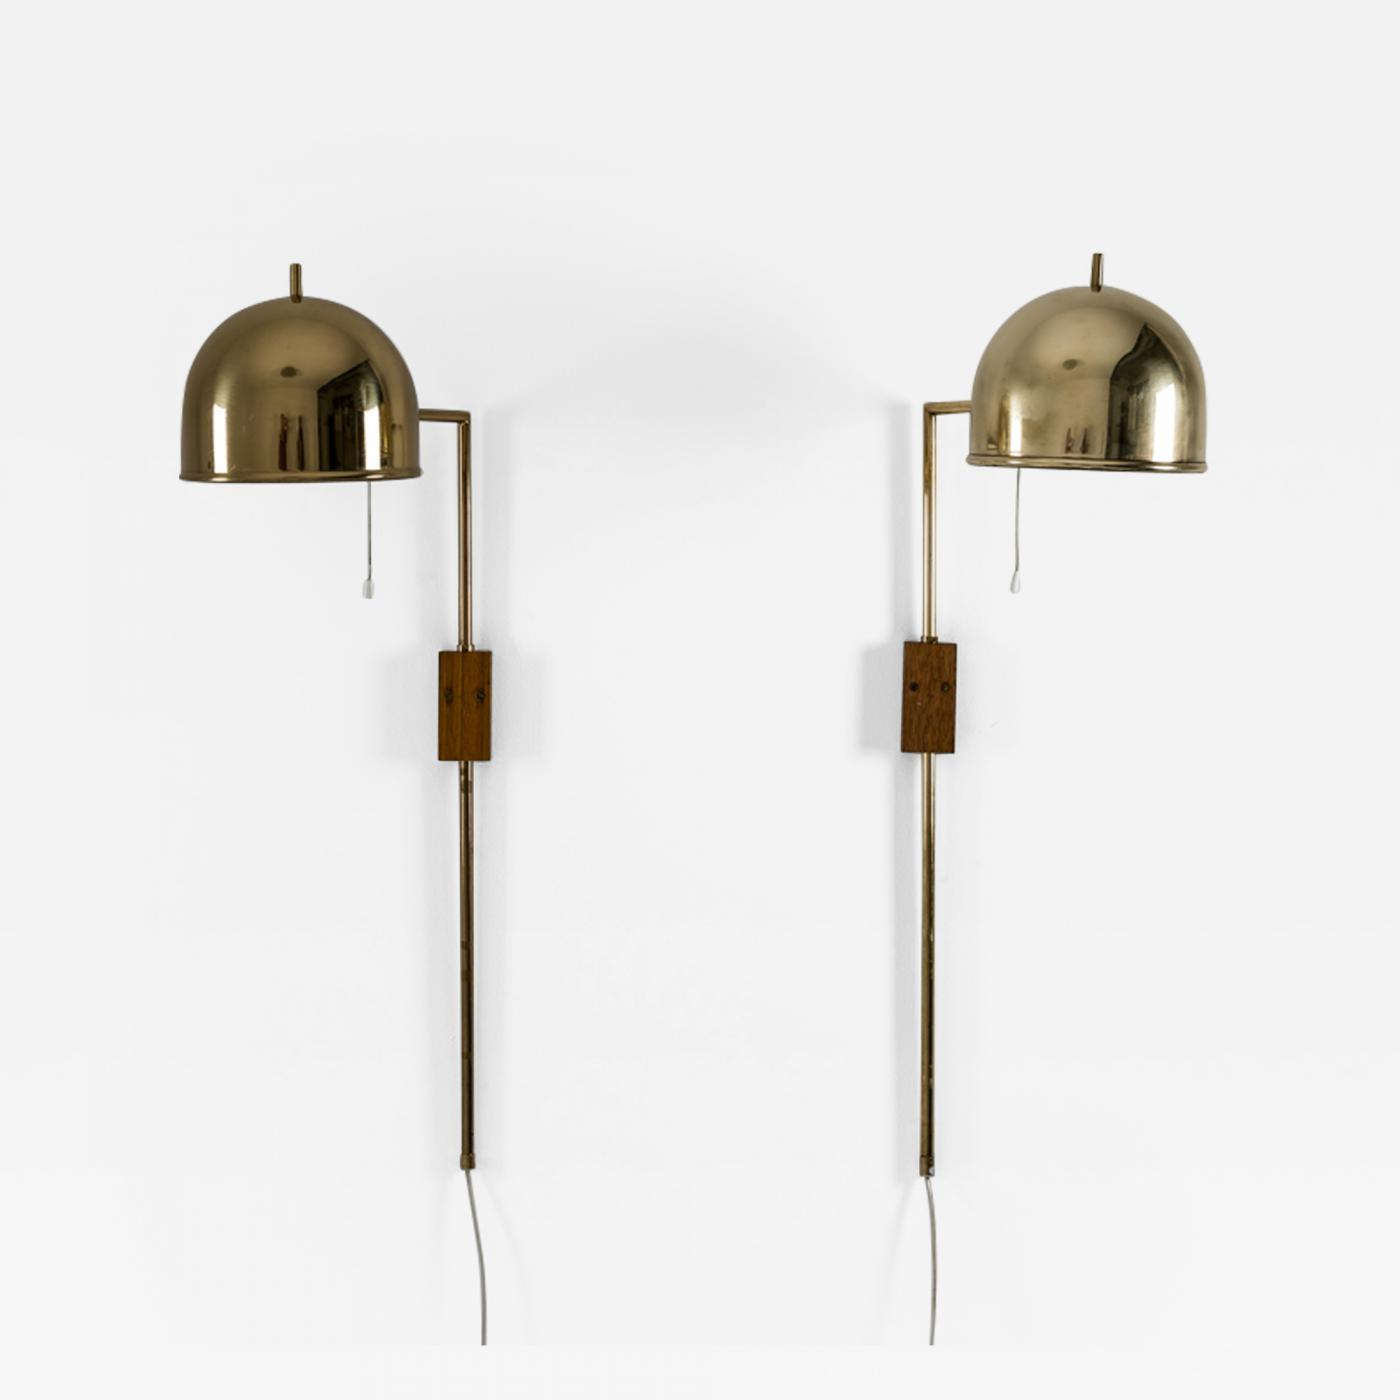 Lighting Wall Lights Bergboms Scandinavian Midcentury Wall Lamps In Brass By Bergboms Sweden